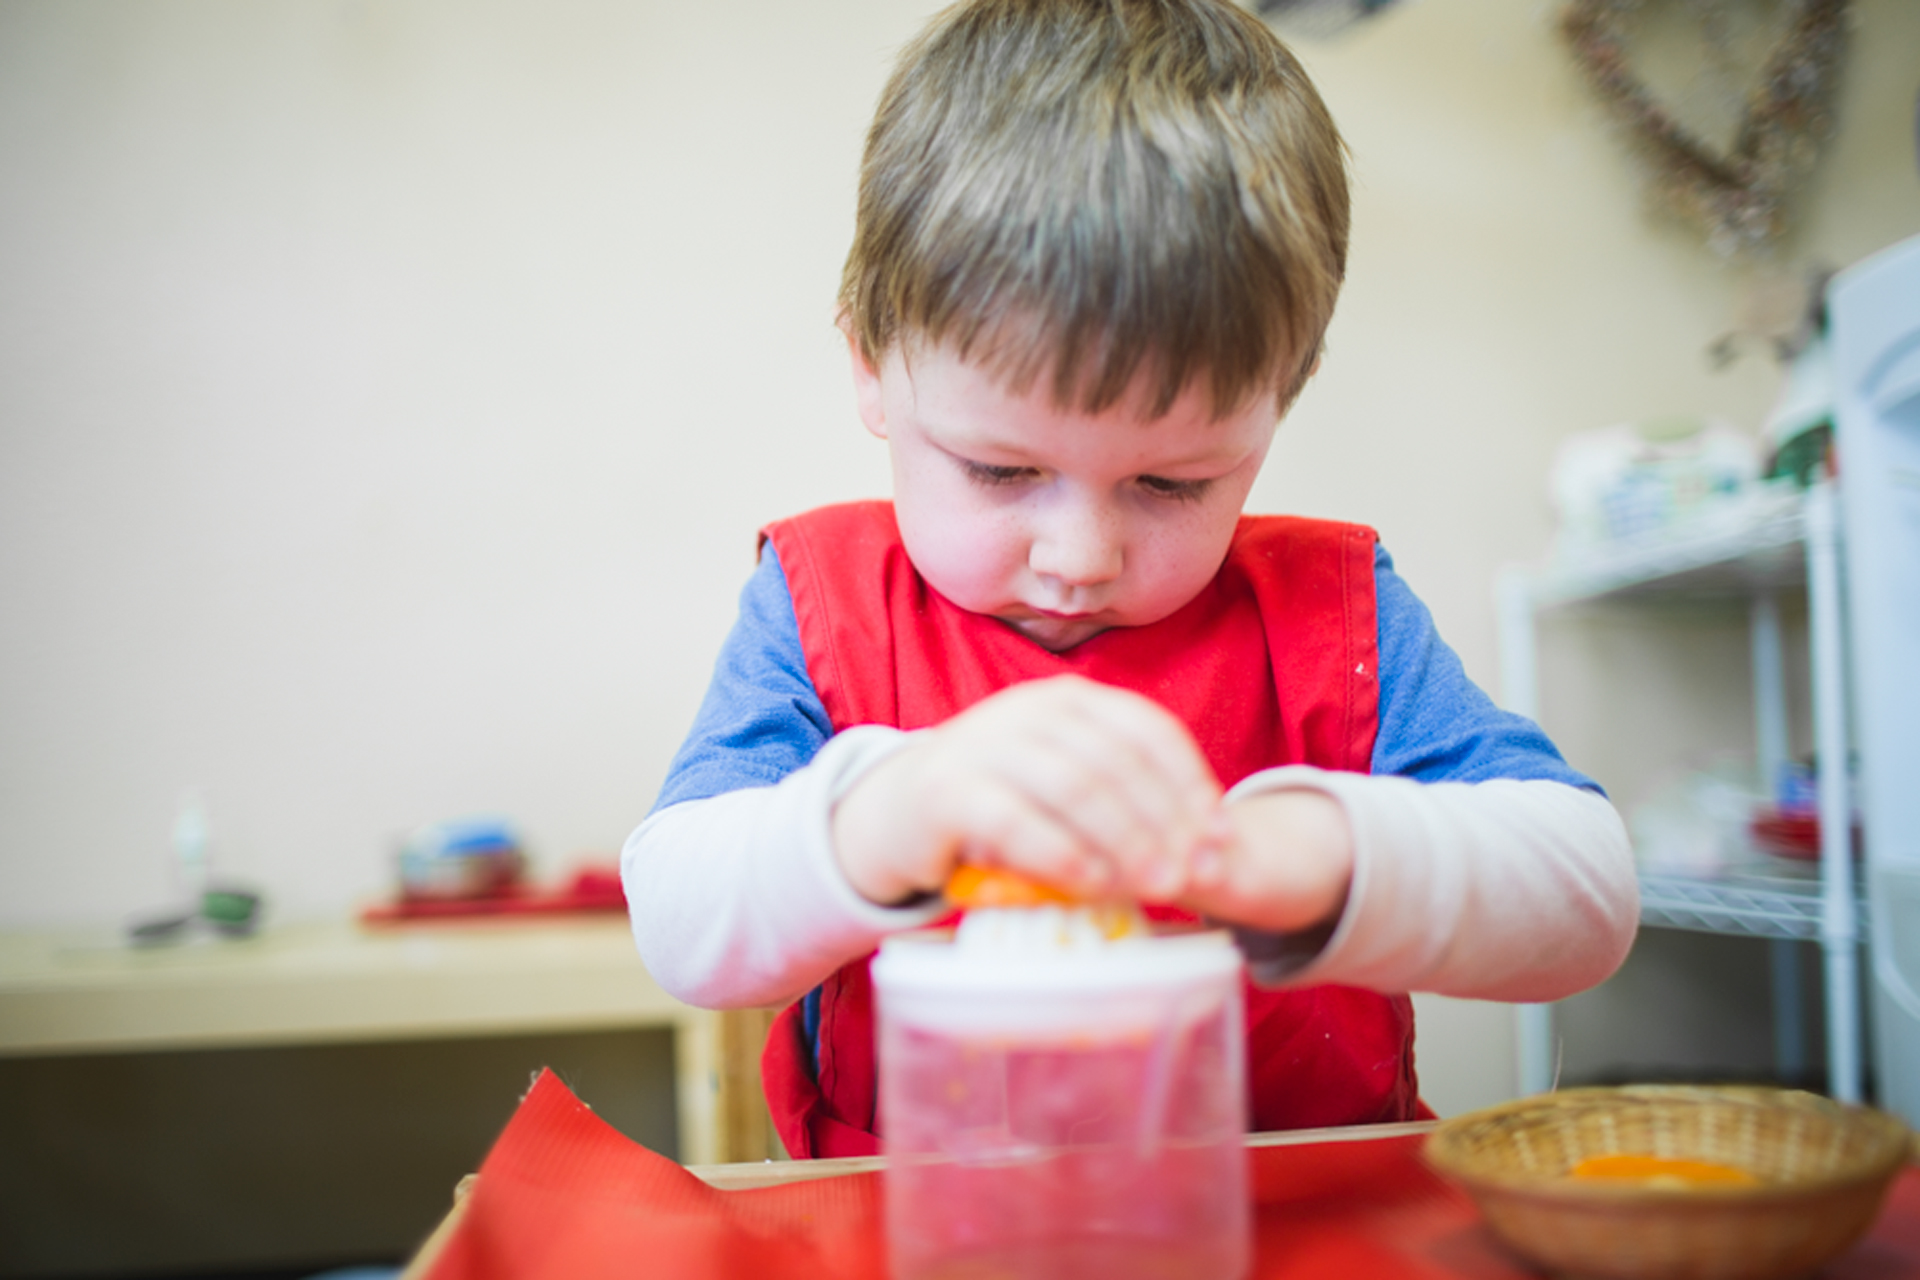 independence in montessori Here are some helpful ways for parents to incorporate montessori practical life activities at home to foster confidence, positive development and independence.